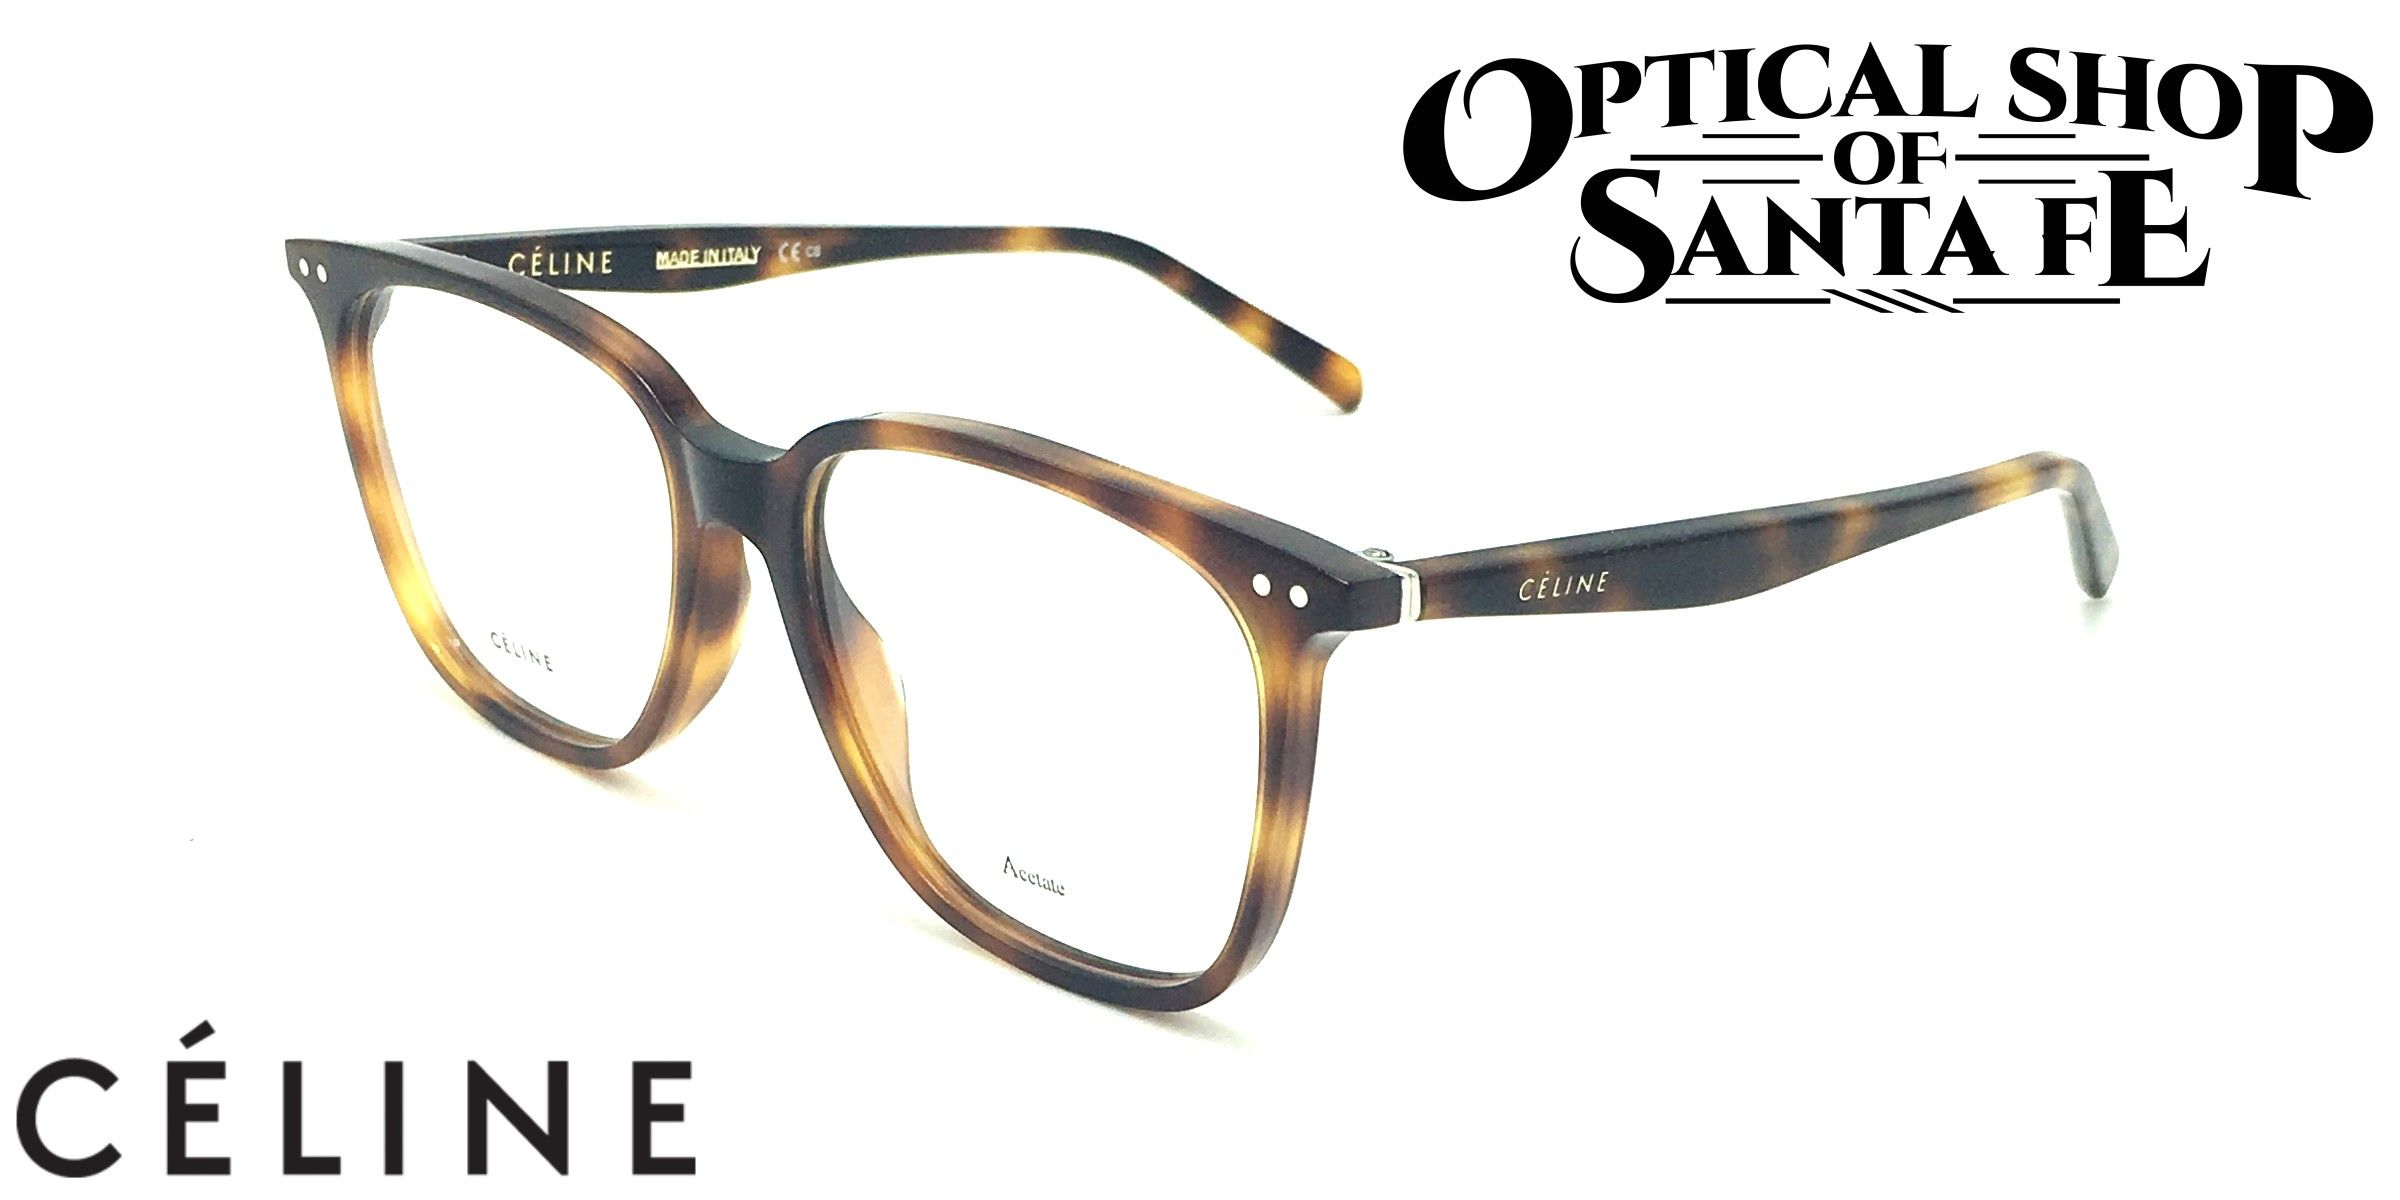 Celine Optical Fashion Eyewear